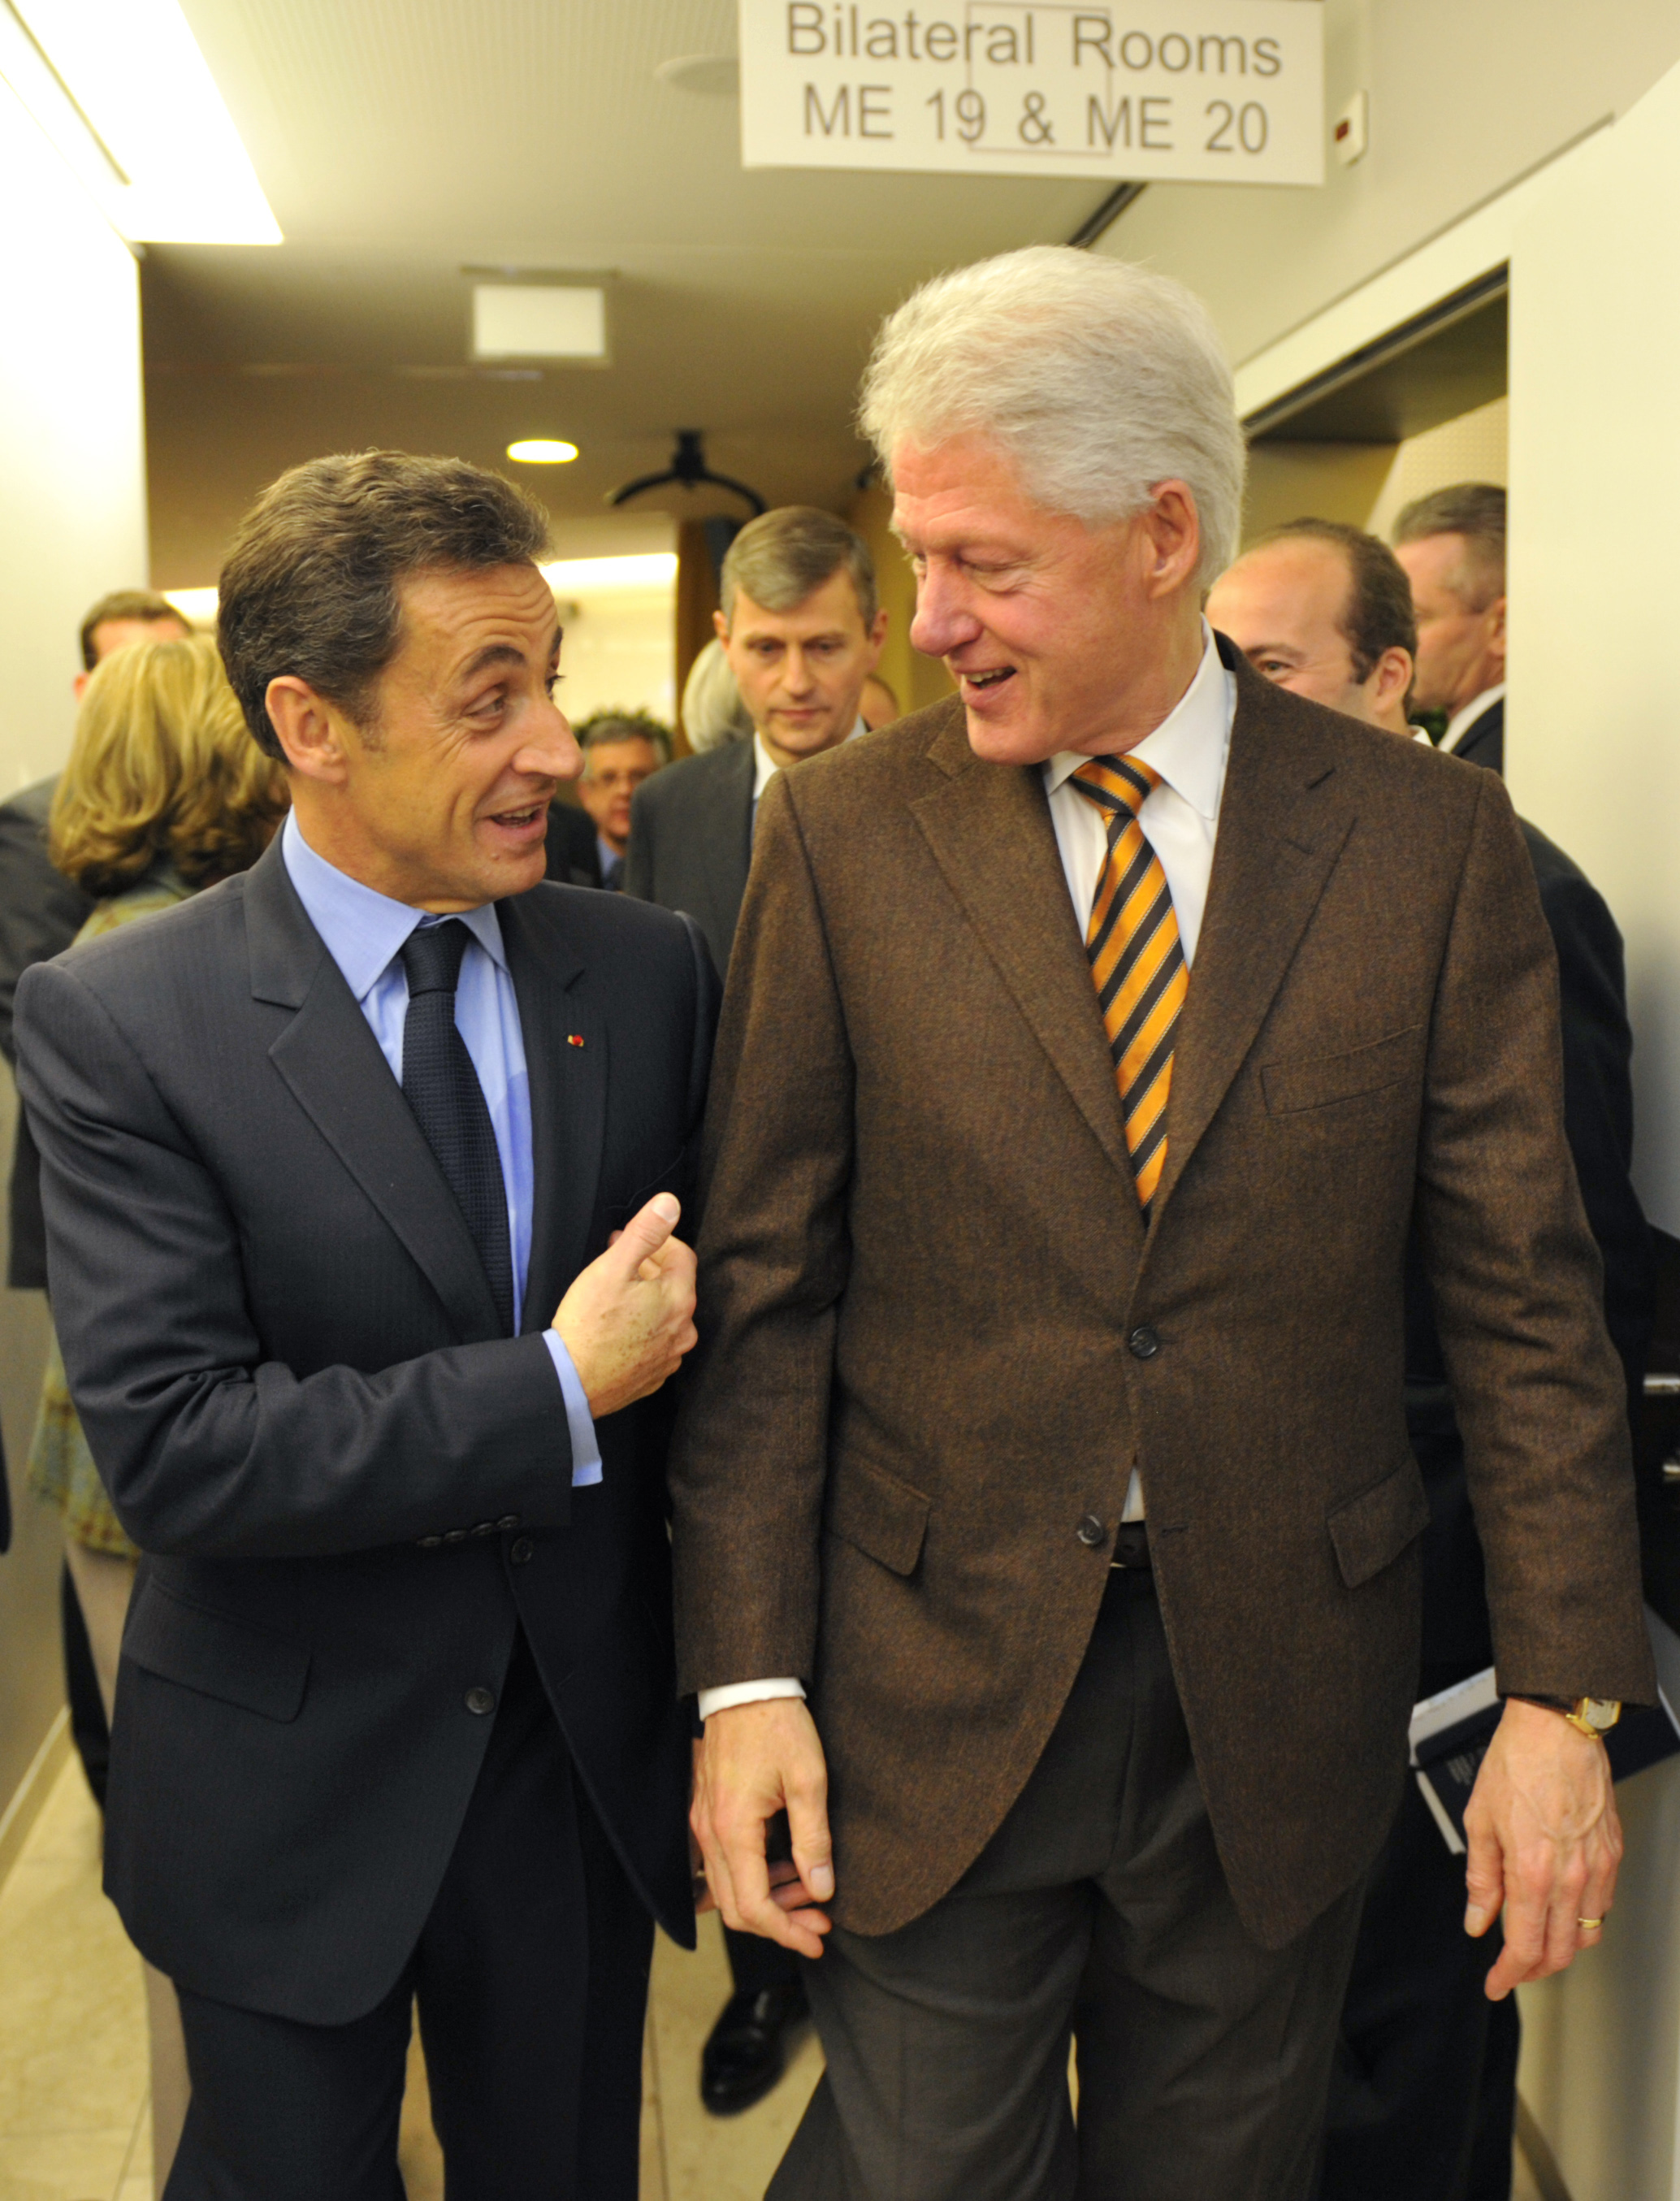 France's President Nicolas Sarkozy, left, walks with former U.S. President Bill Clinton, right, in the hallway of the main venue at the World Economic...